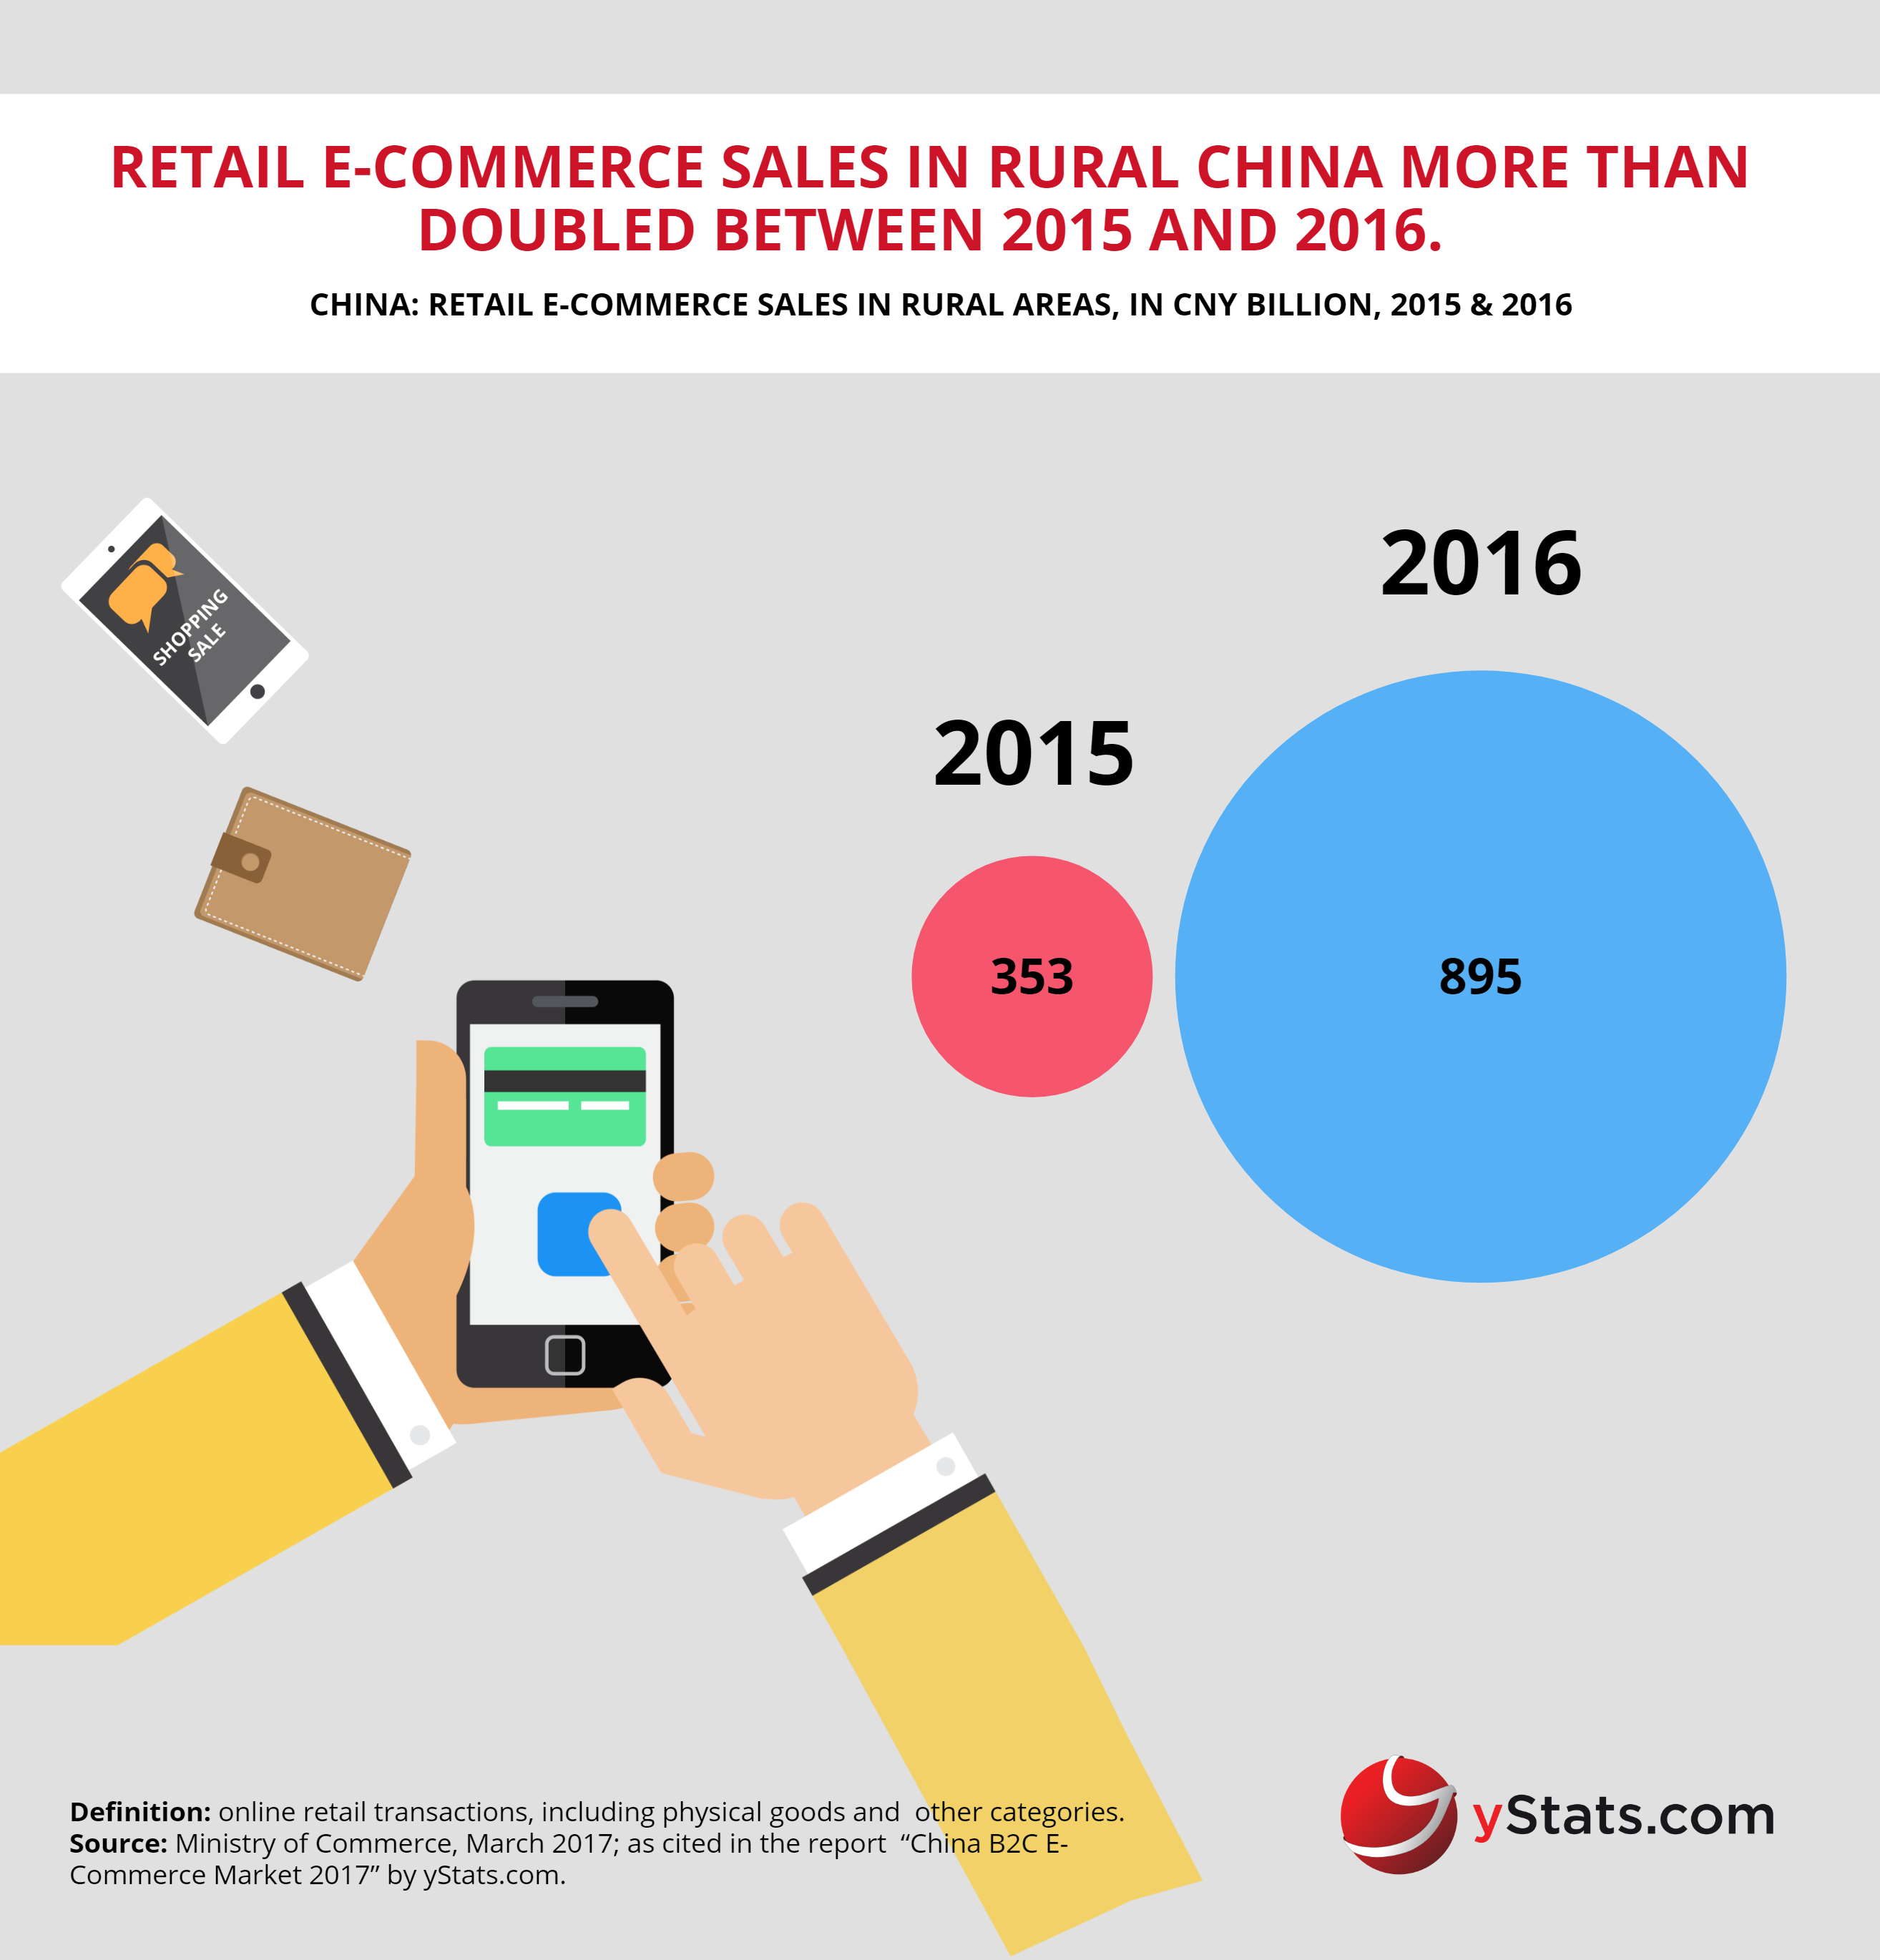 ecommerce sales in rural areas in china